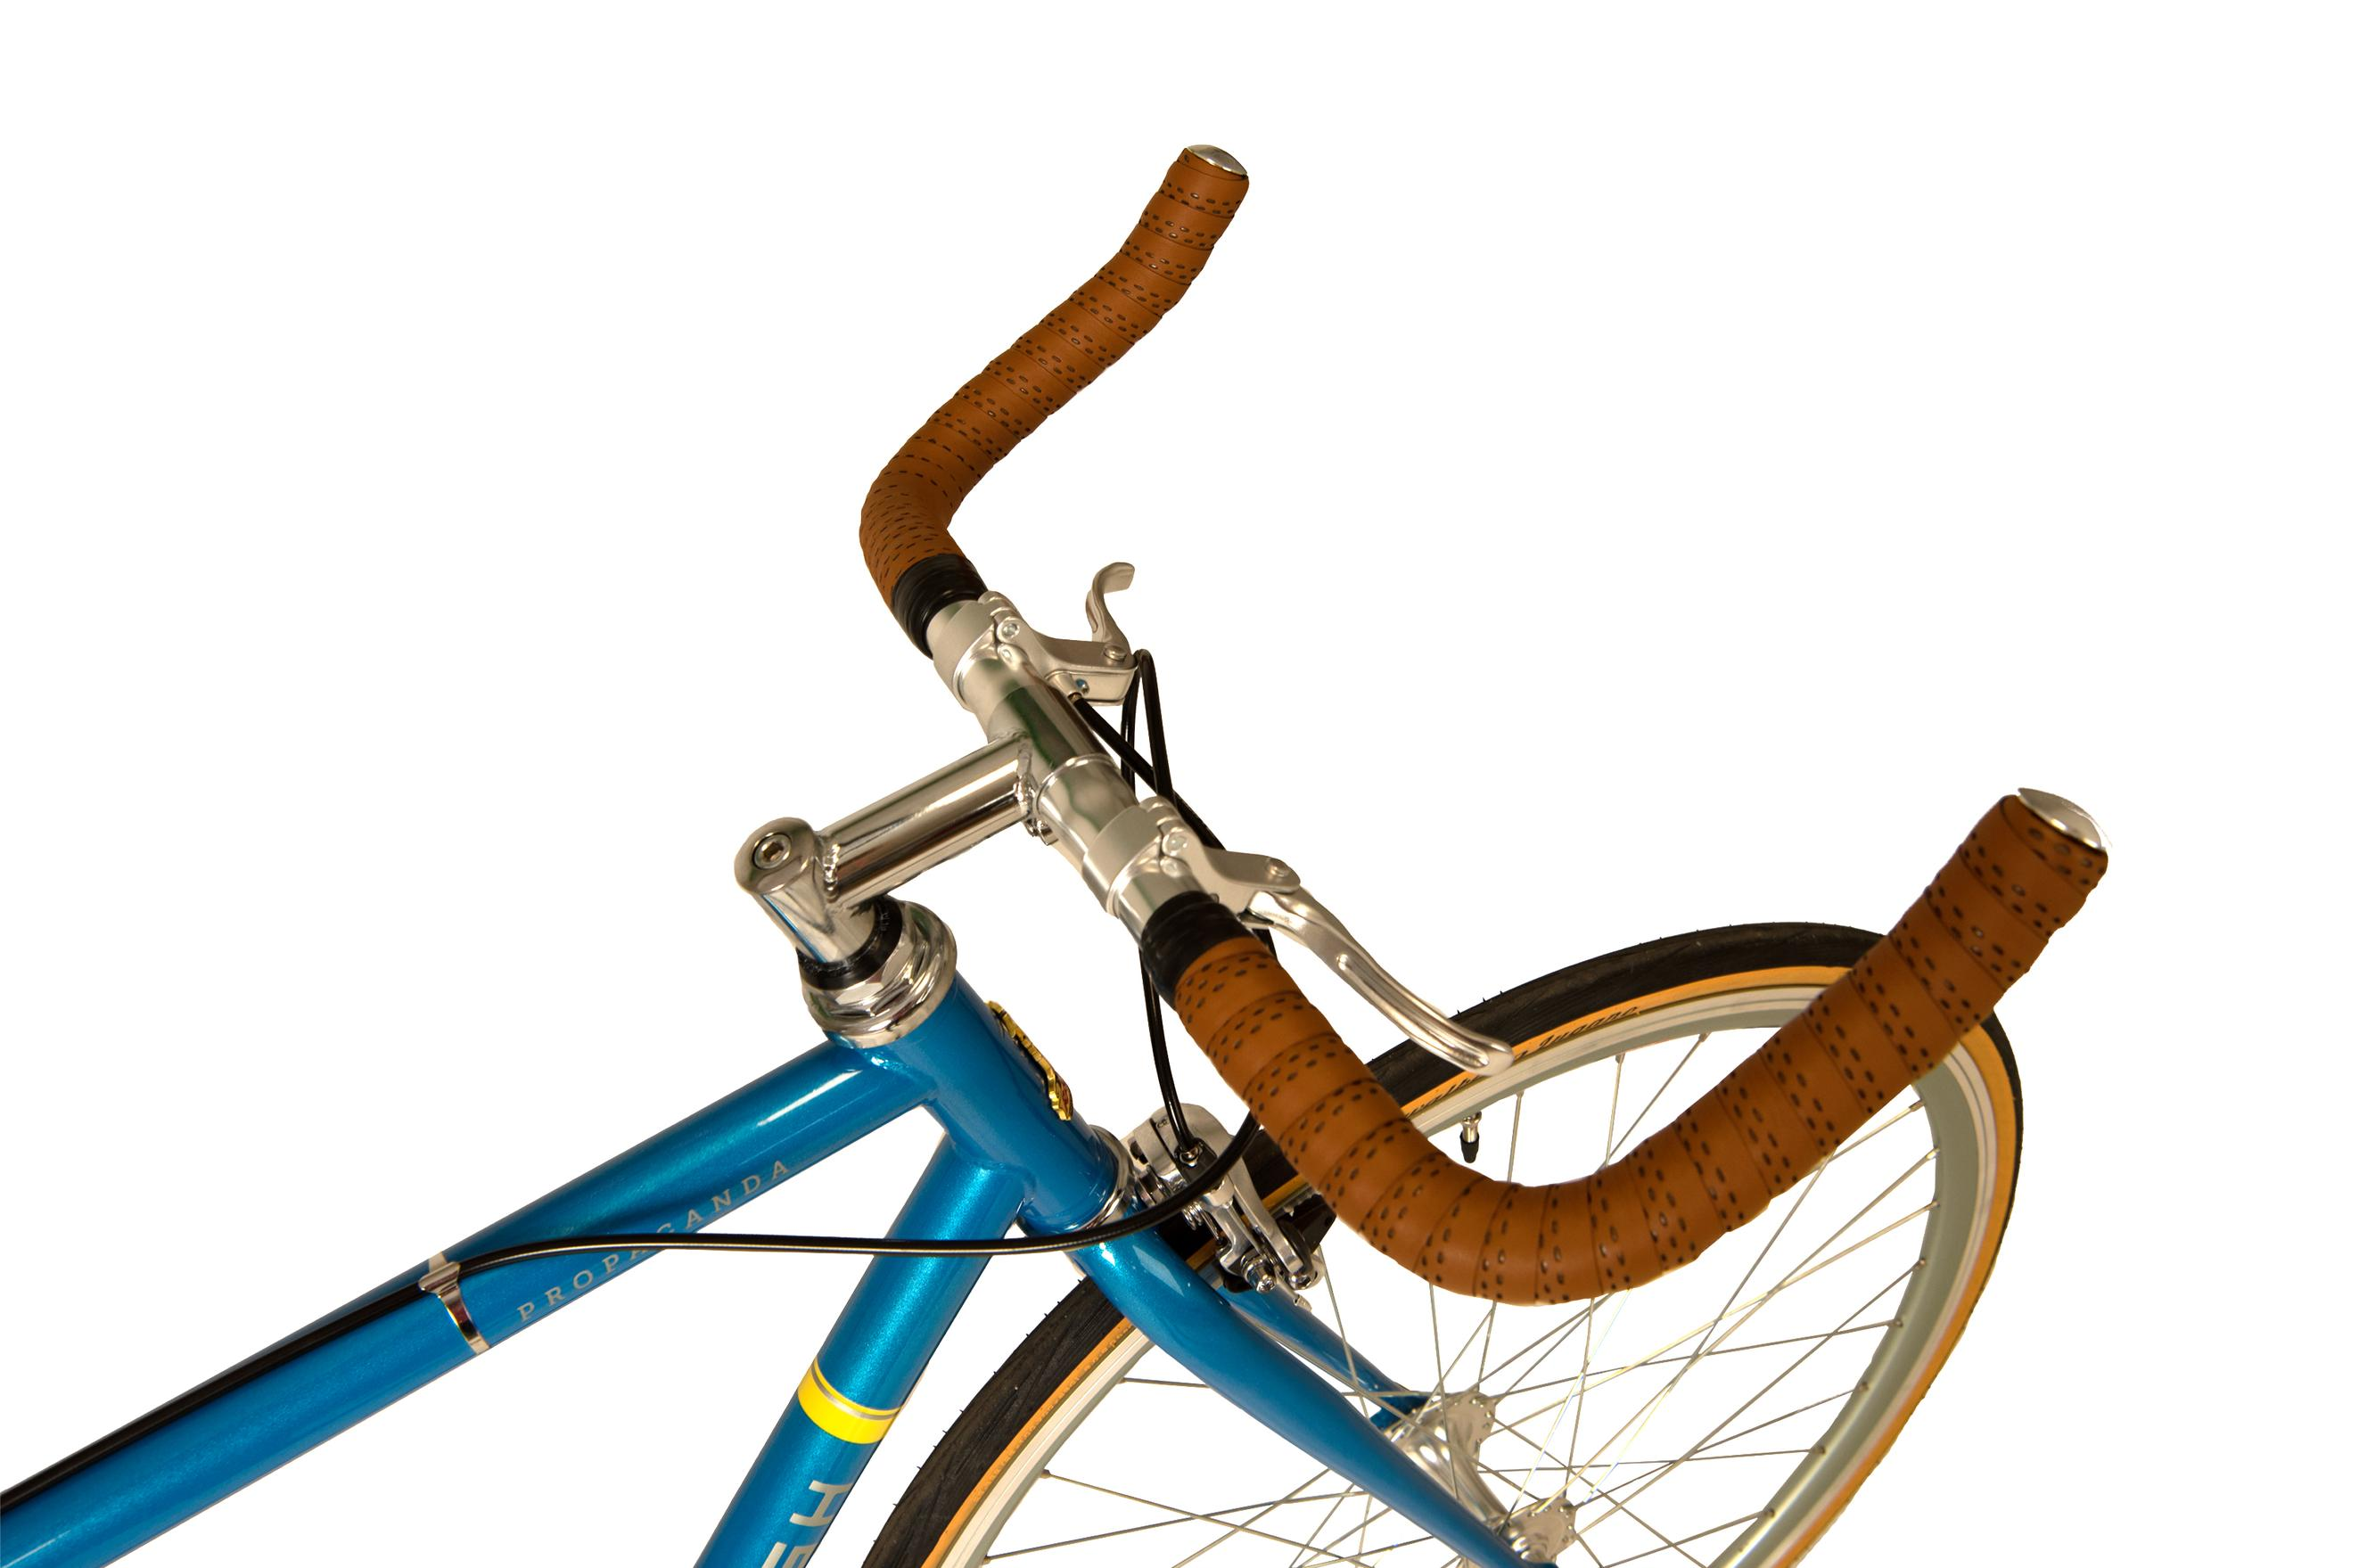 Bullhorn handlebars on the Raleigh Propaganda bike in colour blue